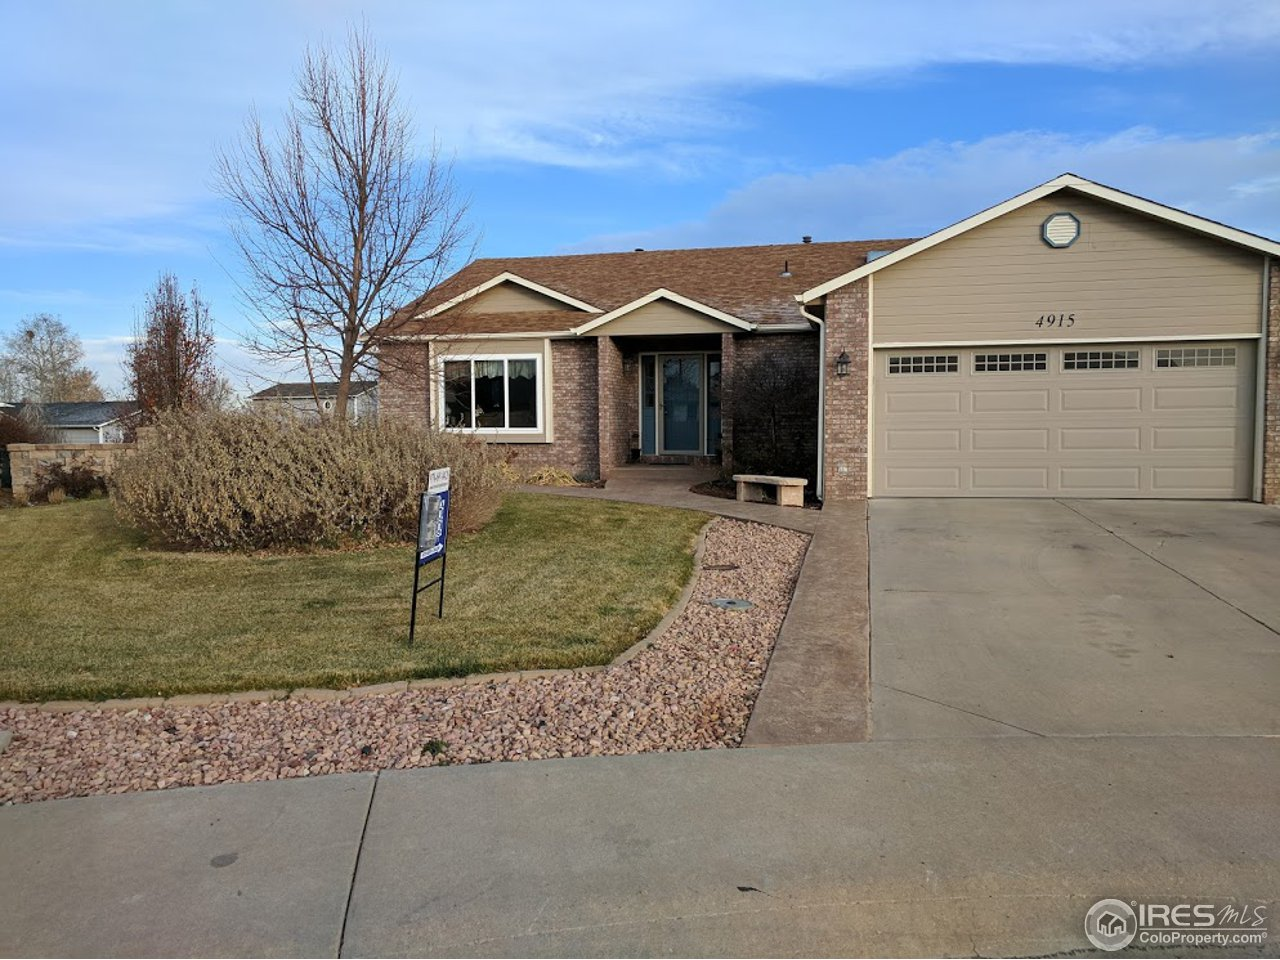 4915 W 3rd St Rd, Greeley CO 80634